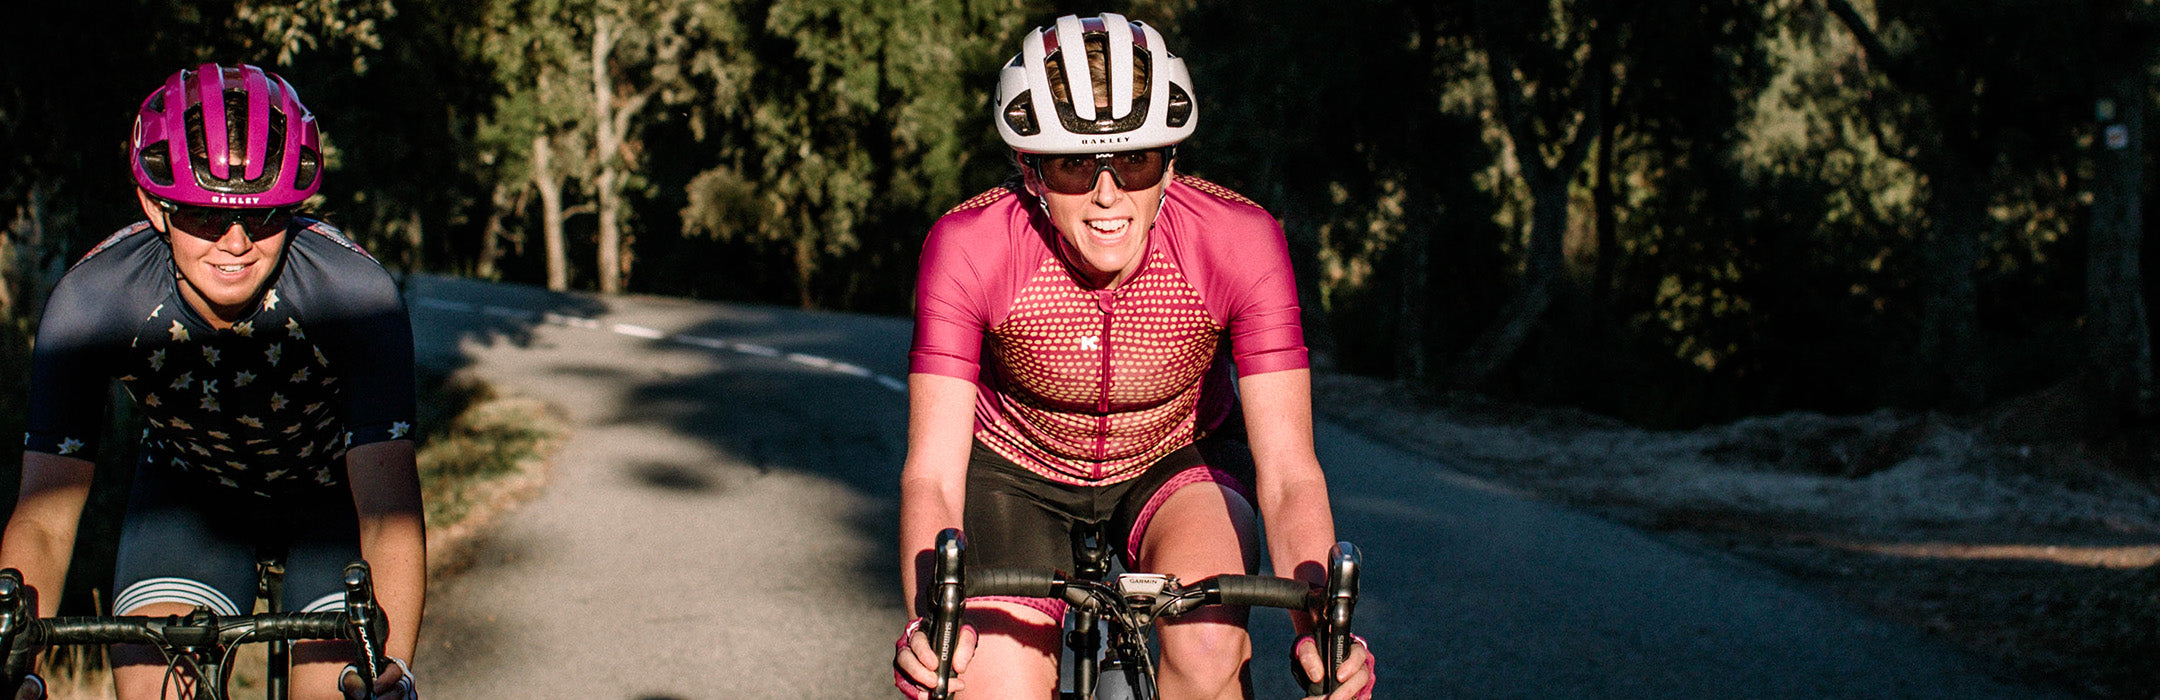 katusha women's performance cycling apparel - allure collection